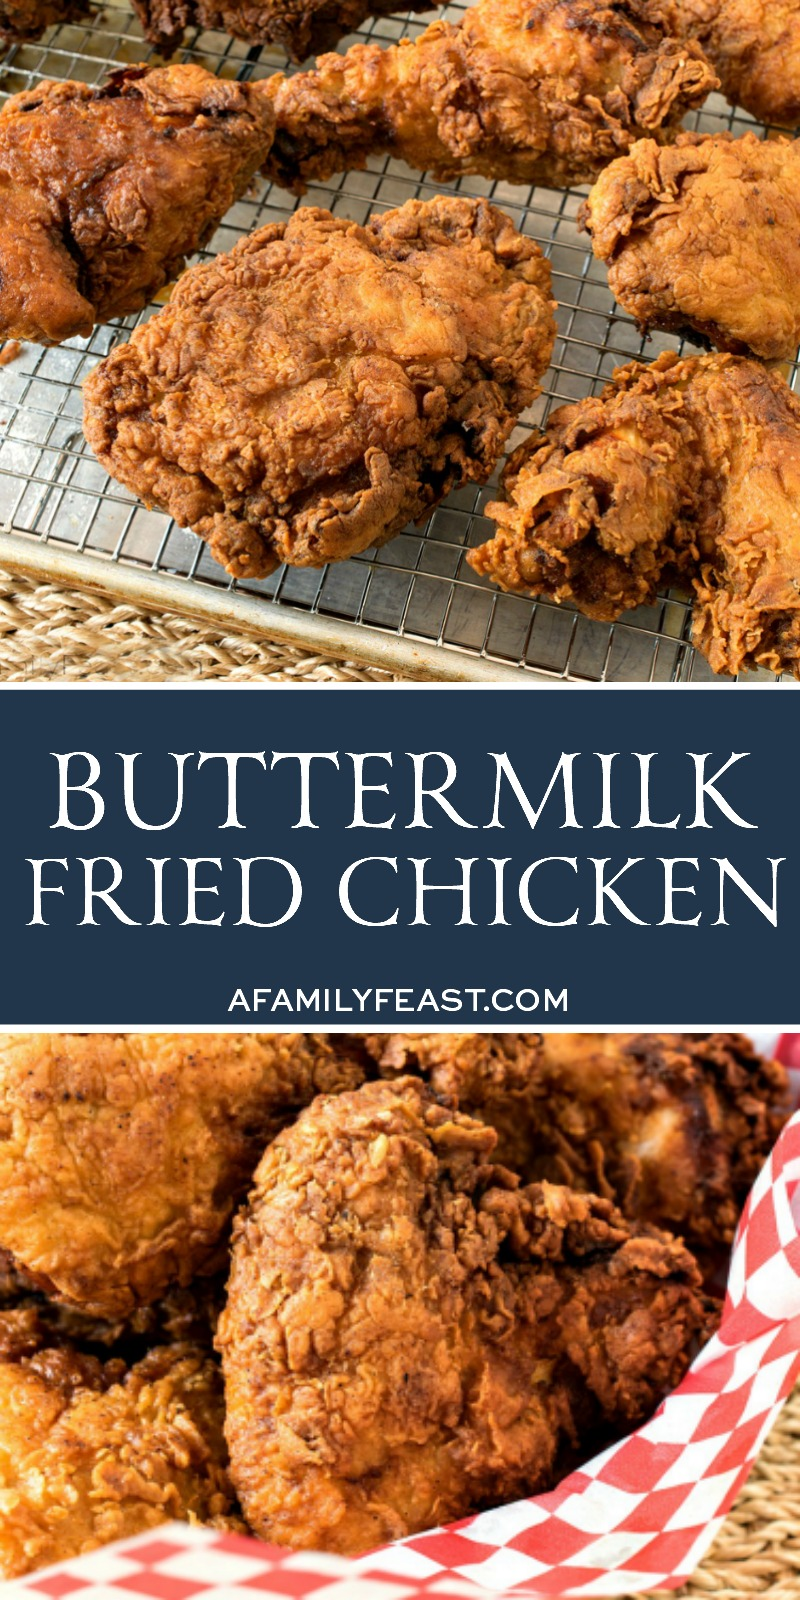 This Buttermilk Fried Chicken recipe is crispy and flavorful on the outside, and juicy and tender on the inside! A true, classic Southern fried chicken recipe!